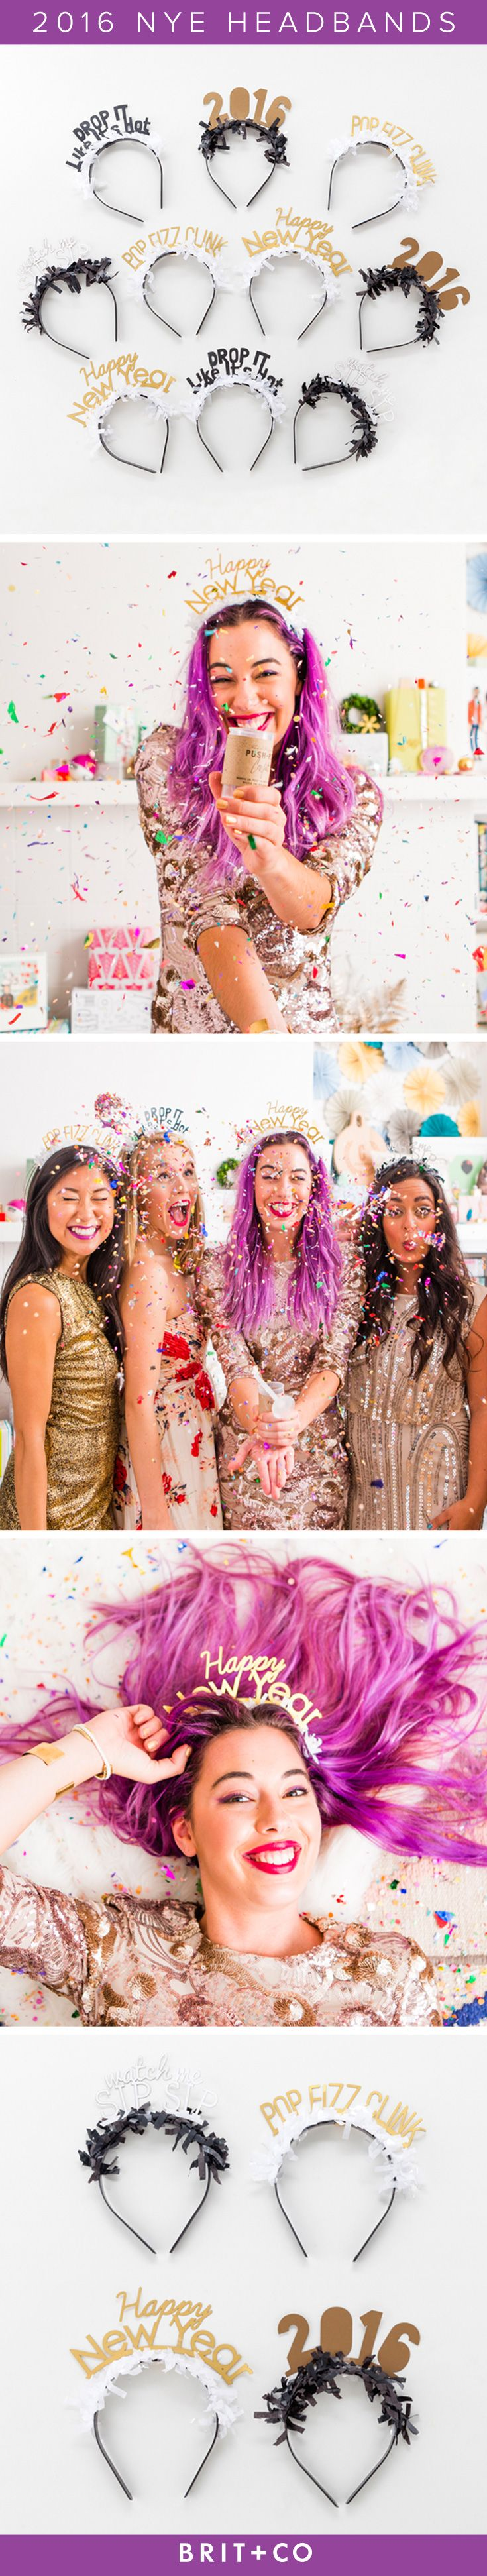 Say goodbye to 2015 + hello to 2016 in style with this NYE headband party pack. Watch the ball drop with friends + family as you celebrate the New Year while accessorizing with these gold, antique gold, black + white fringe headbands detailed with festive Happy New Year phrases.